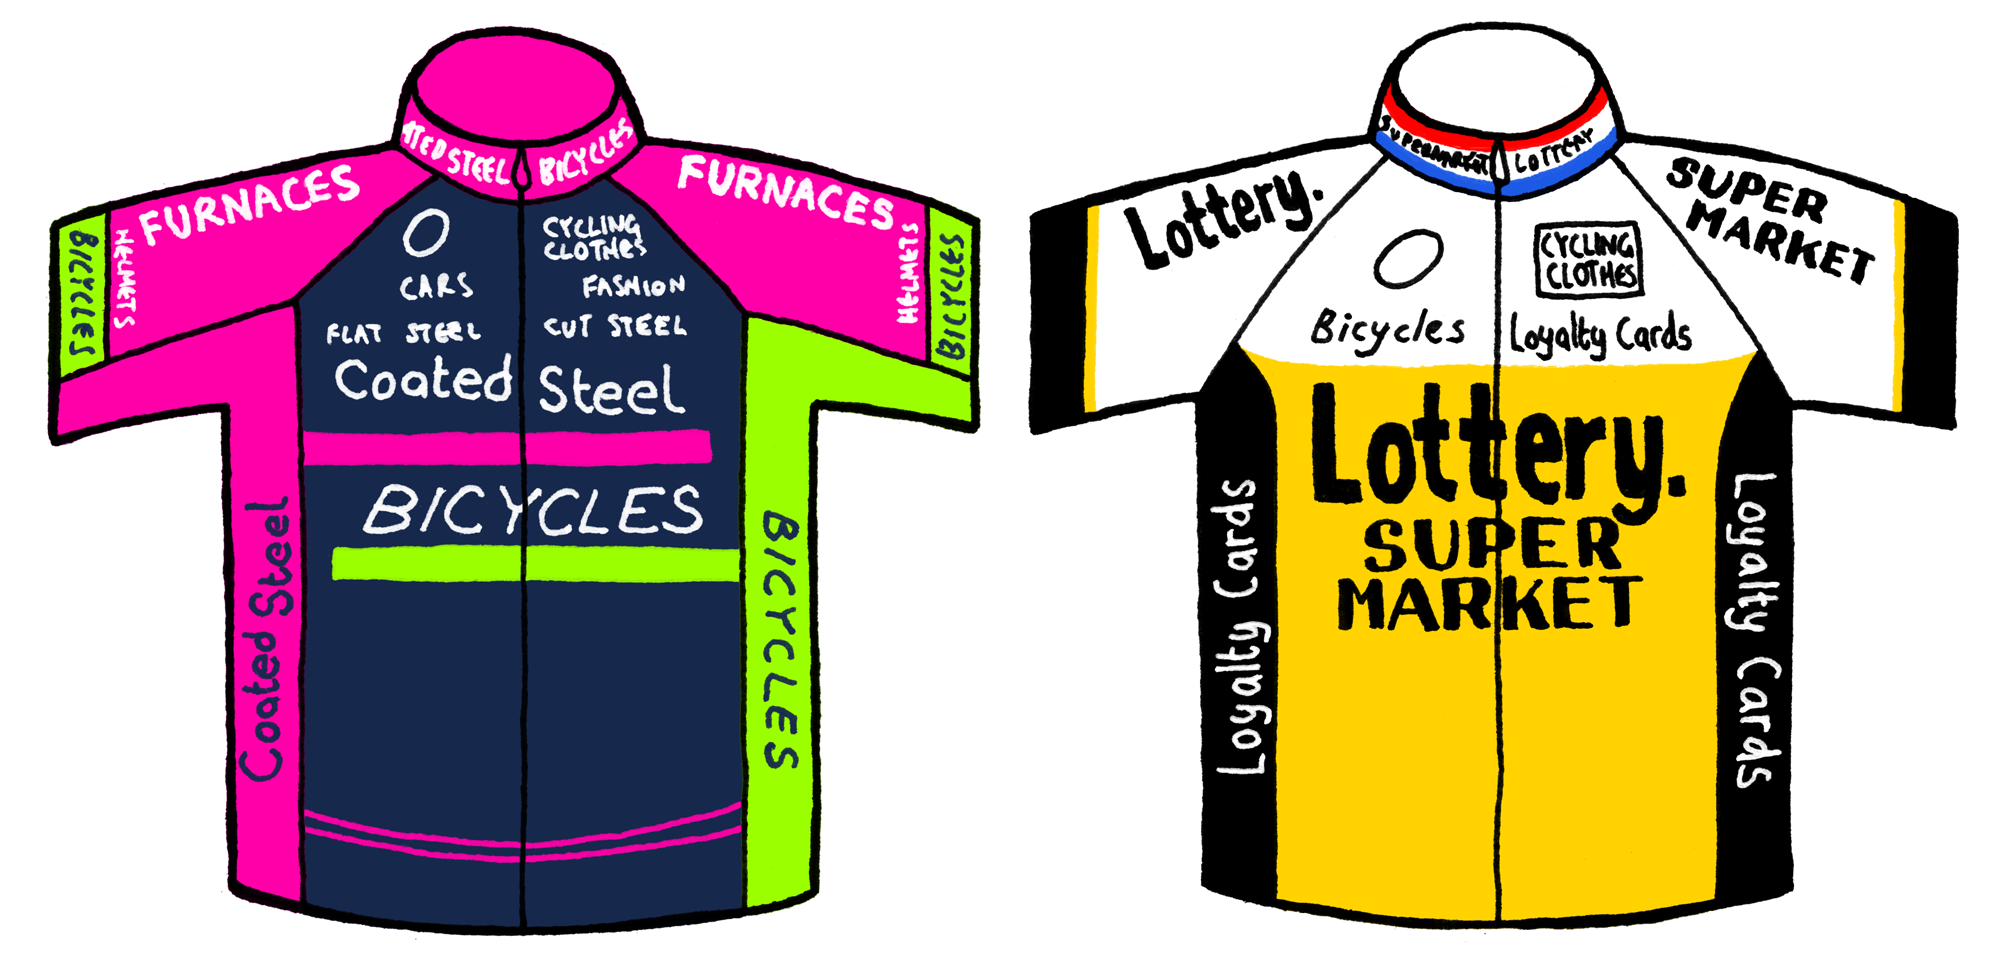 Lampre Merida / Lotto Jumbo